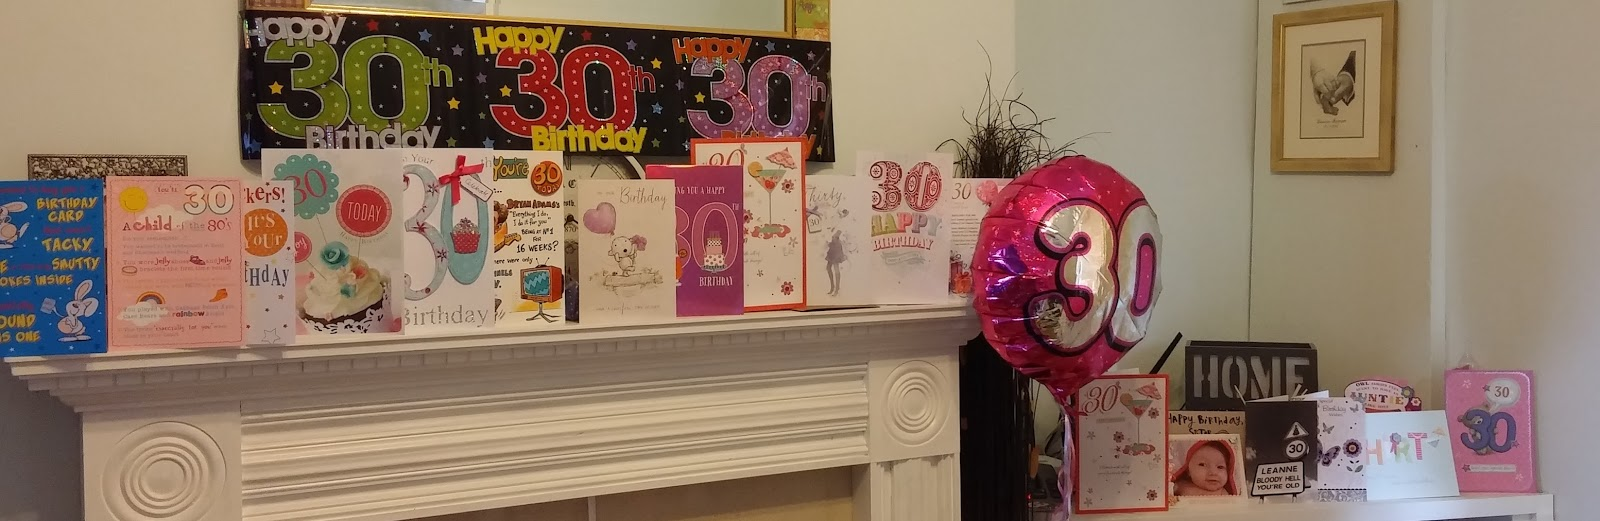 30th birthday cards banners and helium balloon